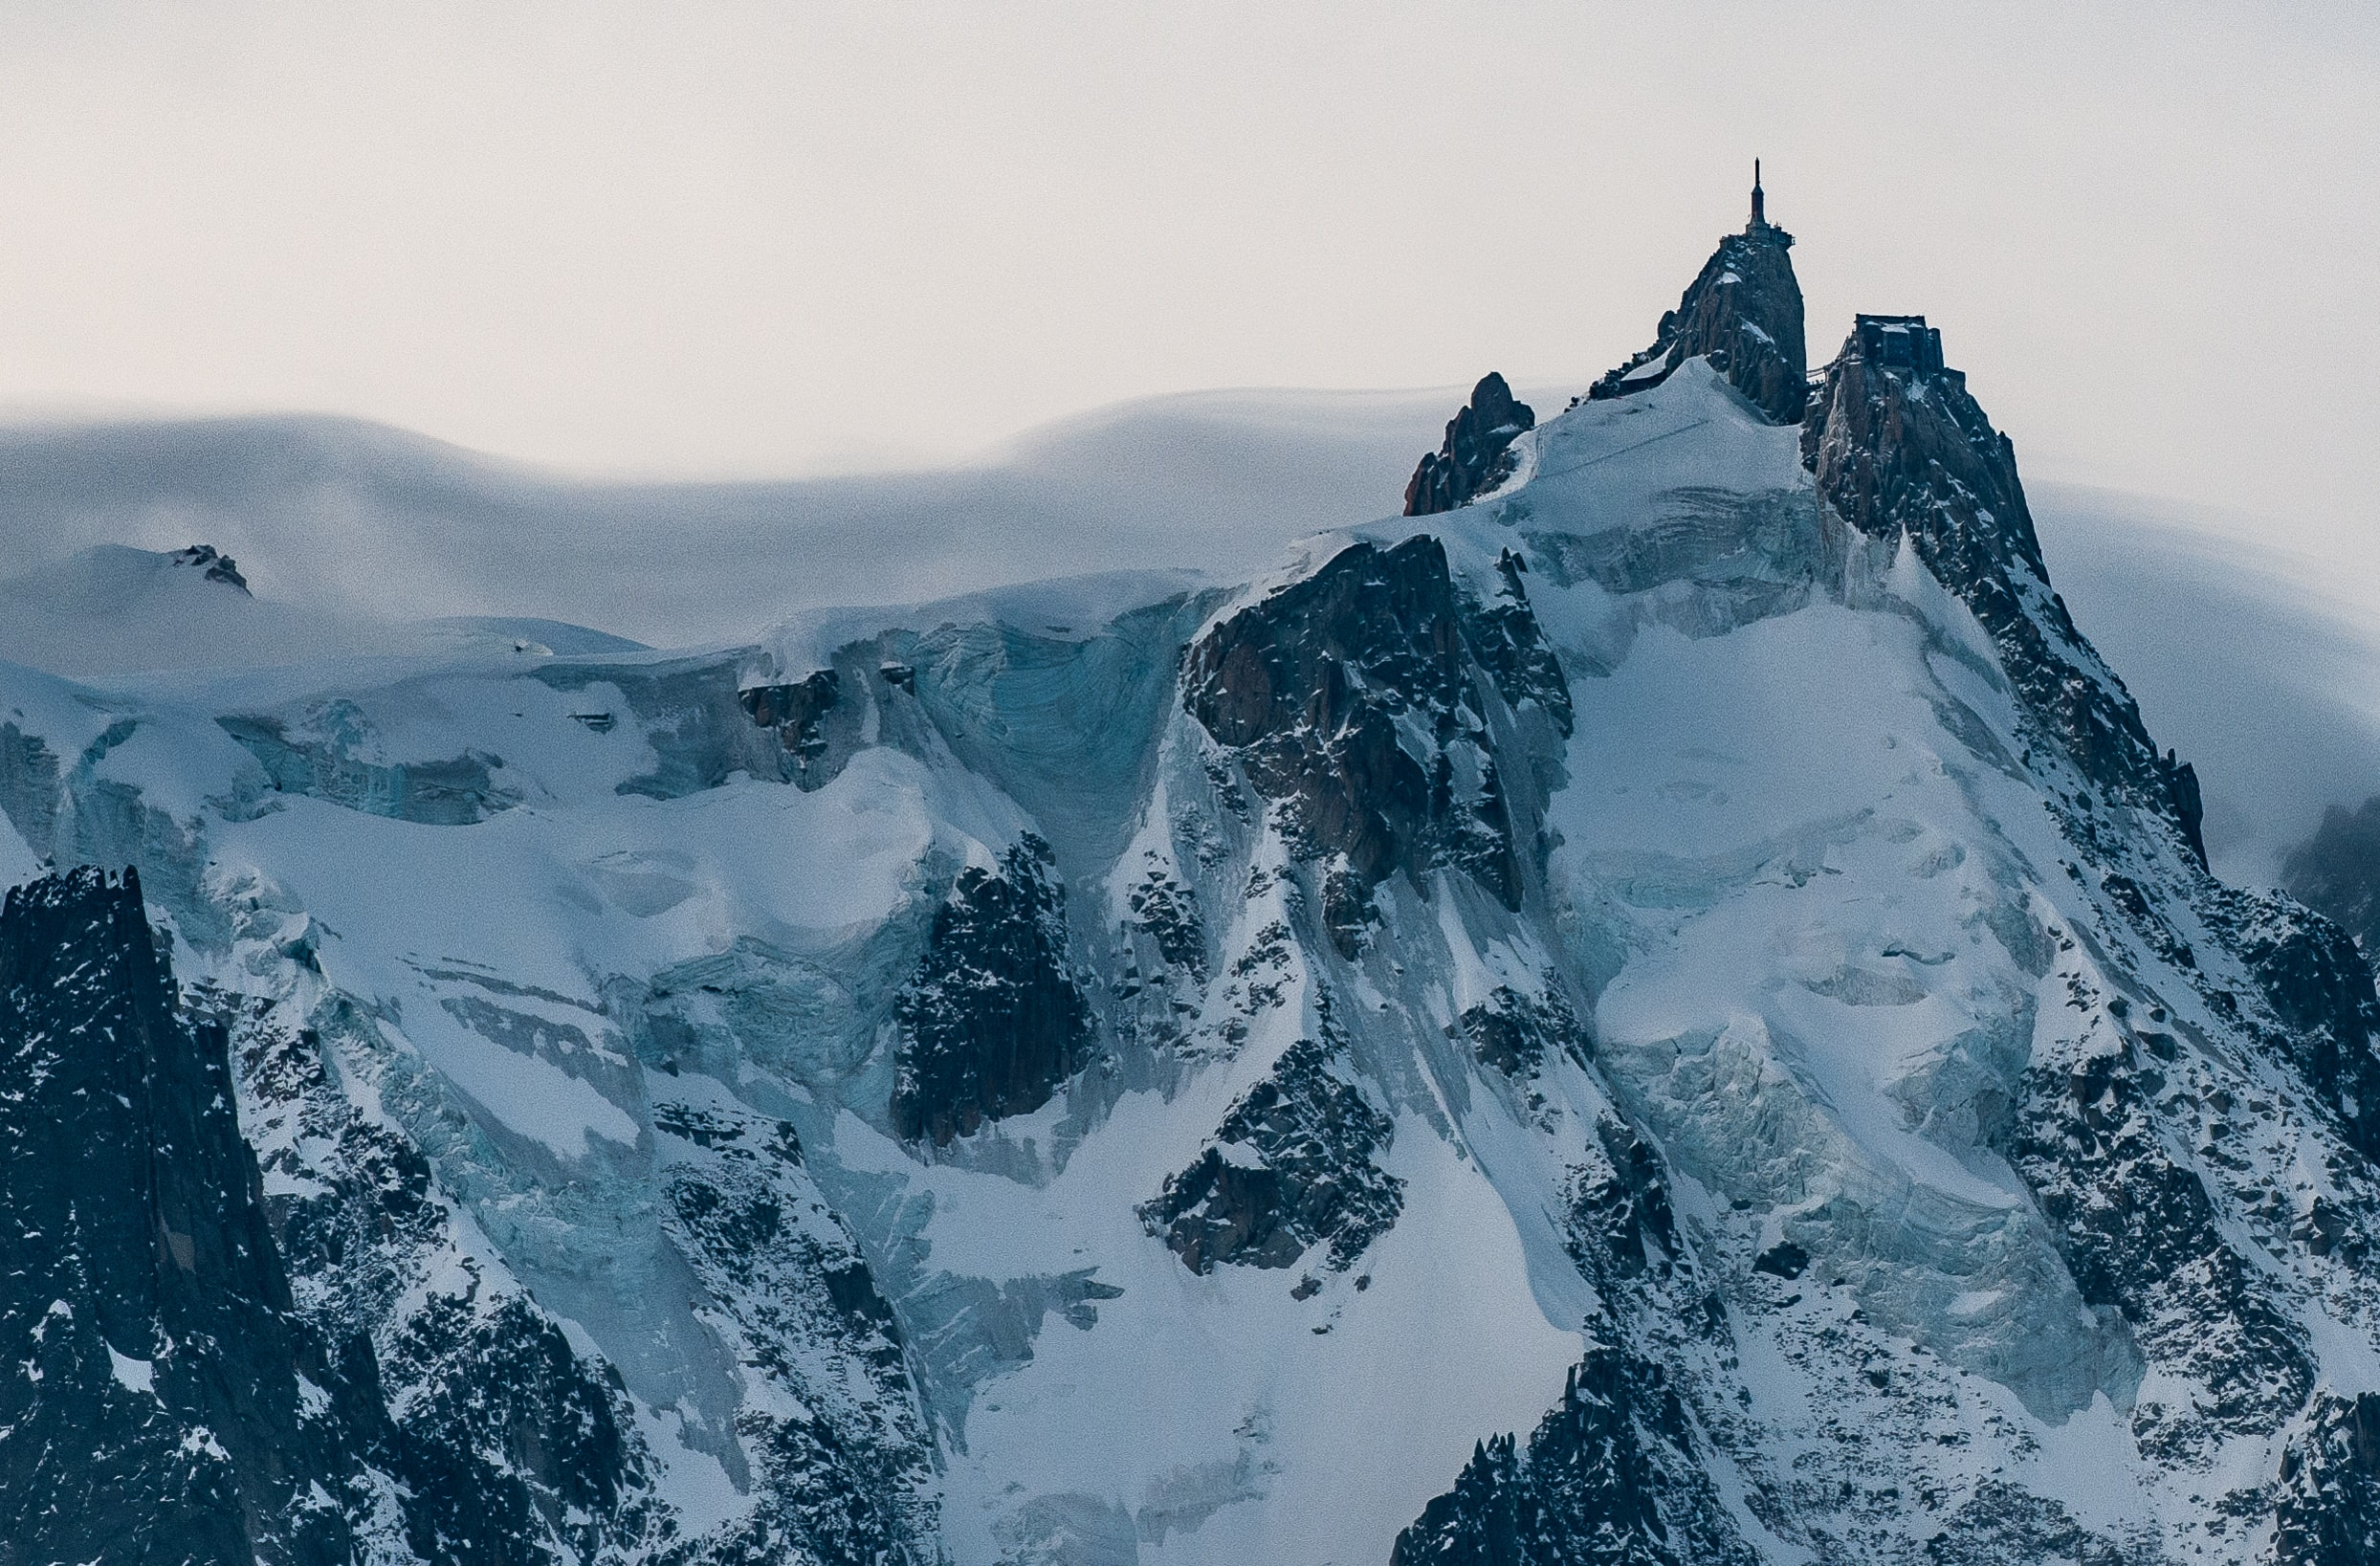 landscape photography mountain covered by snow